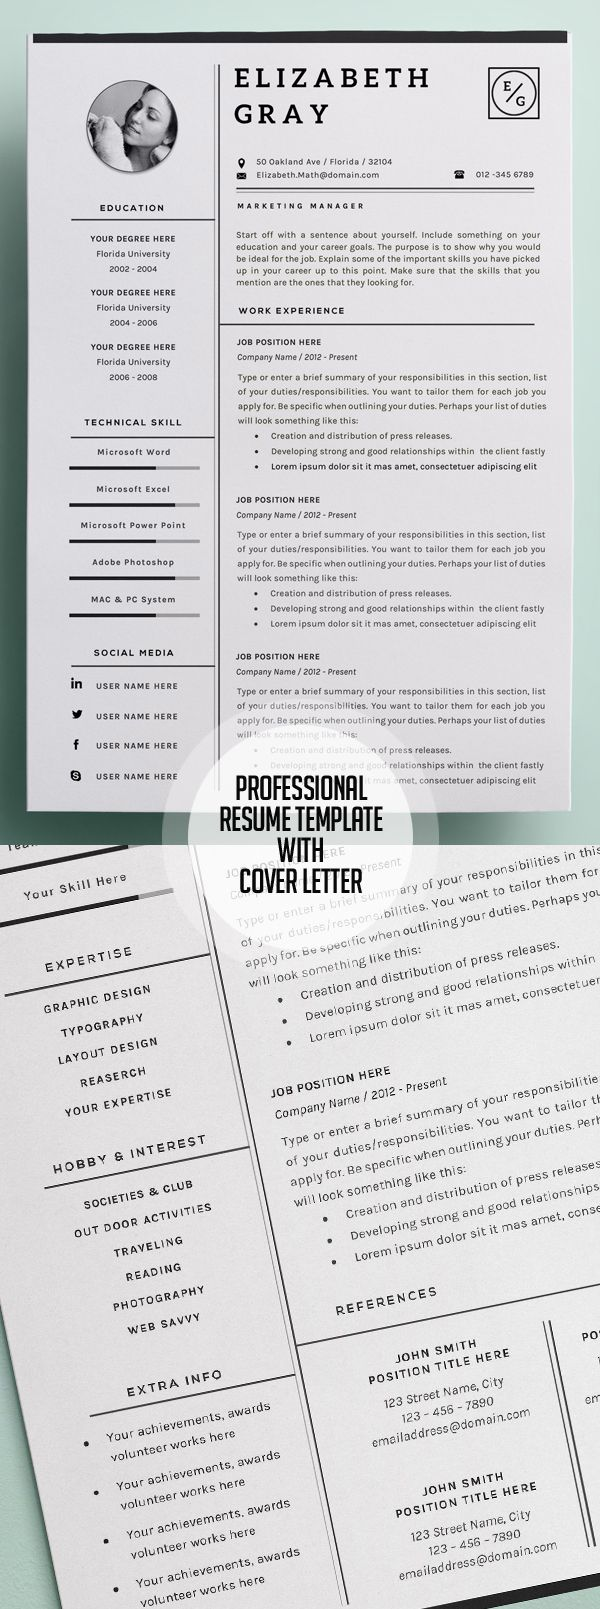 Opposenewapstandardsus  Sweet  Resume Ideas On Pinterest  Resume Resume Templates And  With Handsome Professional And Modern Resume Template With Page Cover Cvtemplate With Enchanting Resume Help Nyc Also A Resume Format In Addition Audit Resume And Great Objective For Resume As Well As Two Page Resume Sample Additionally Entry Level Pharmacy Technician Resume From Pinterestcom With Opposenewapstandardsus  Handsome  Resume Ideas On Pinterest  Resume Resume Templates And  With Enchanting Professional And Modern Resume Template With Page Cover Cvtemplate And Sweet Resume Help Nyc Also A Resume Format In Addition Audit Resume From Pinterestcom